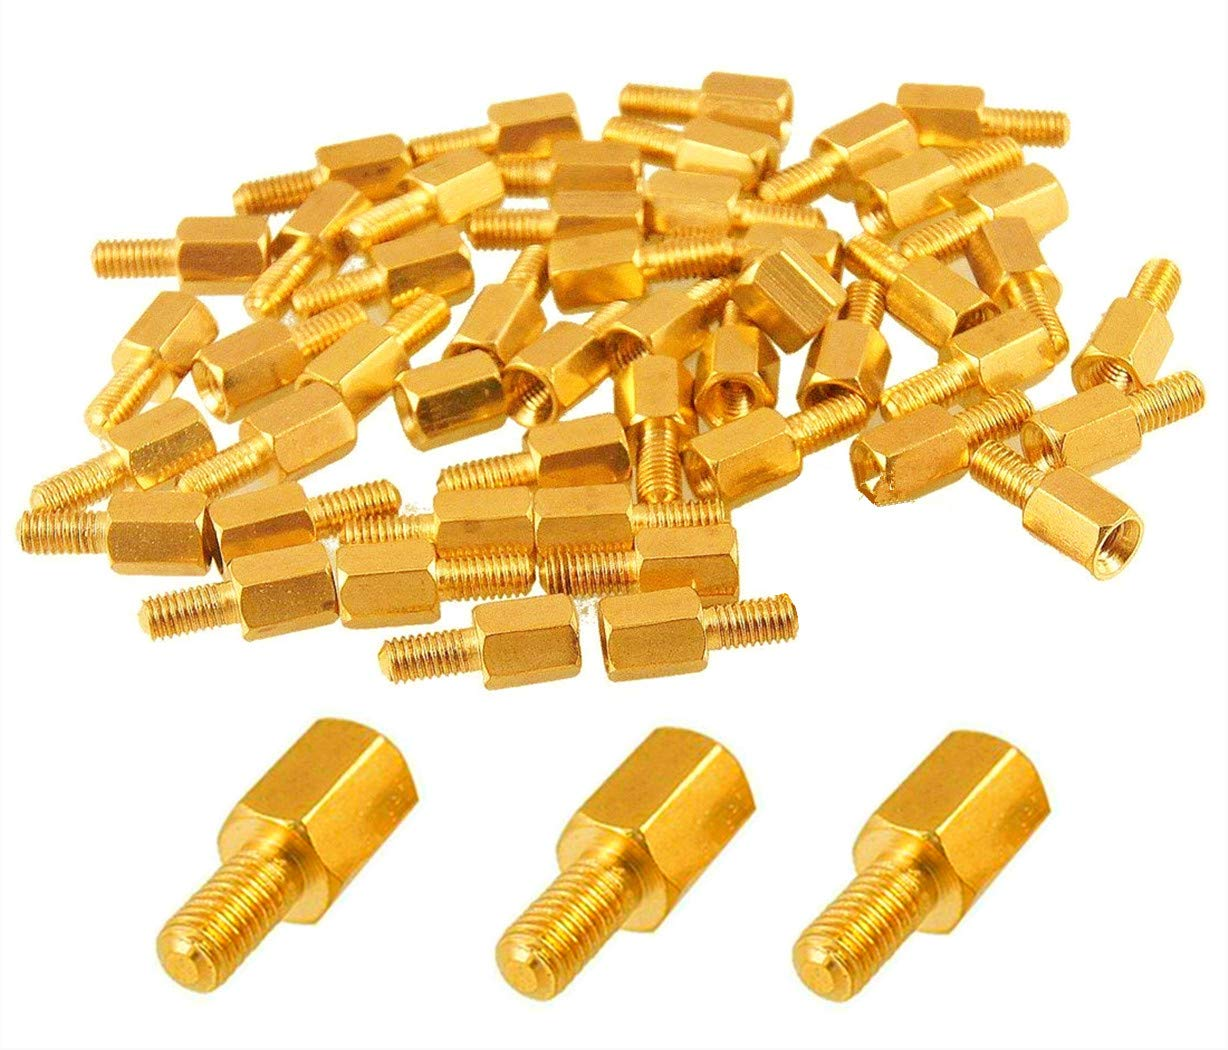 M3 3mm Female To Male Brass Hex Hexagonal Pillars PCB Threaded Standoff Spacers